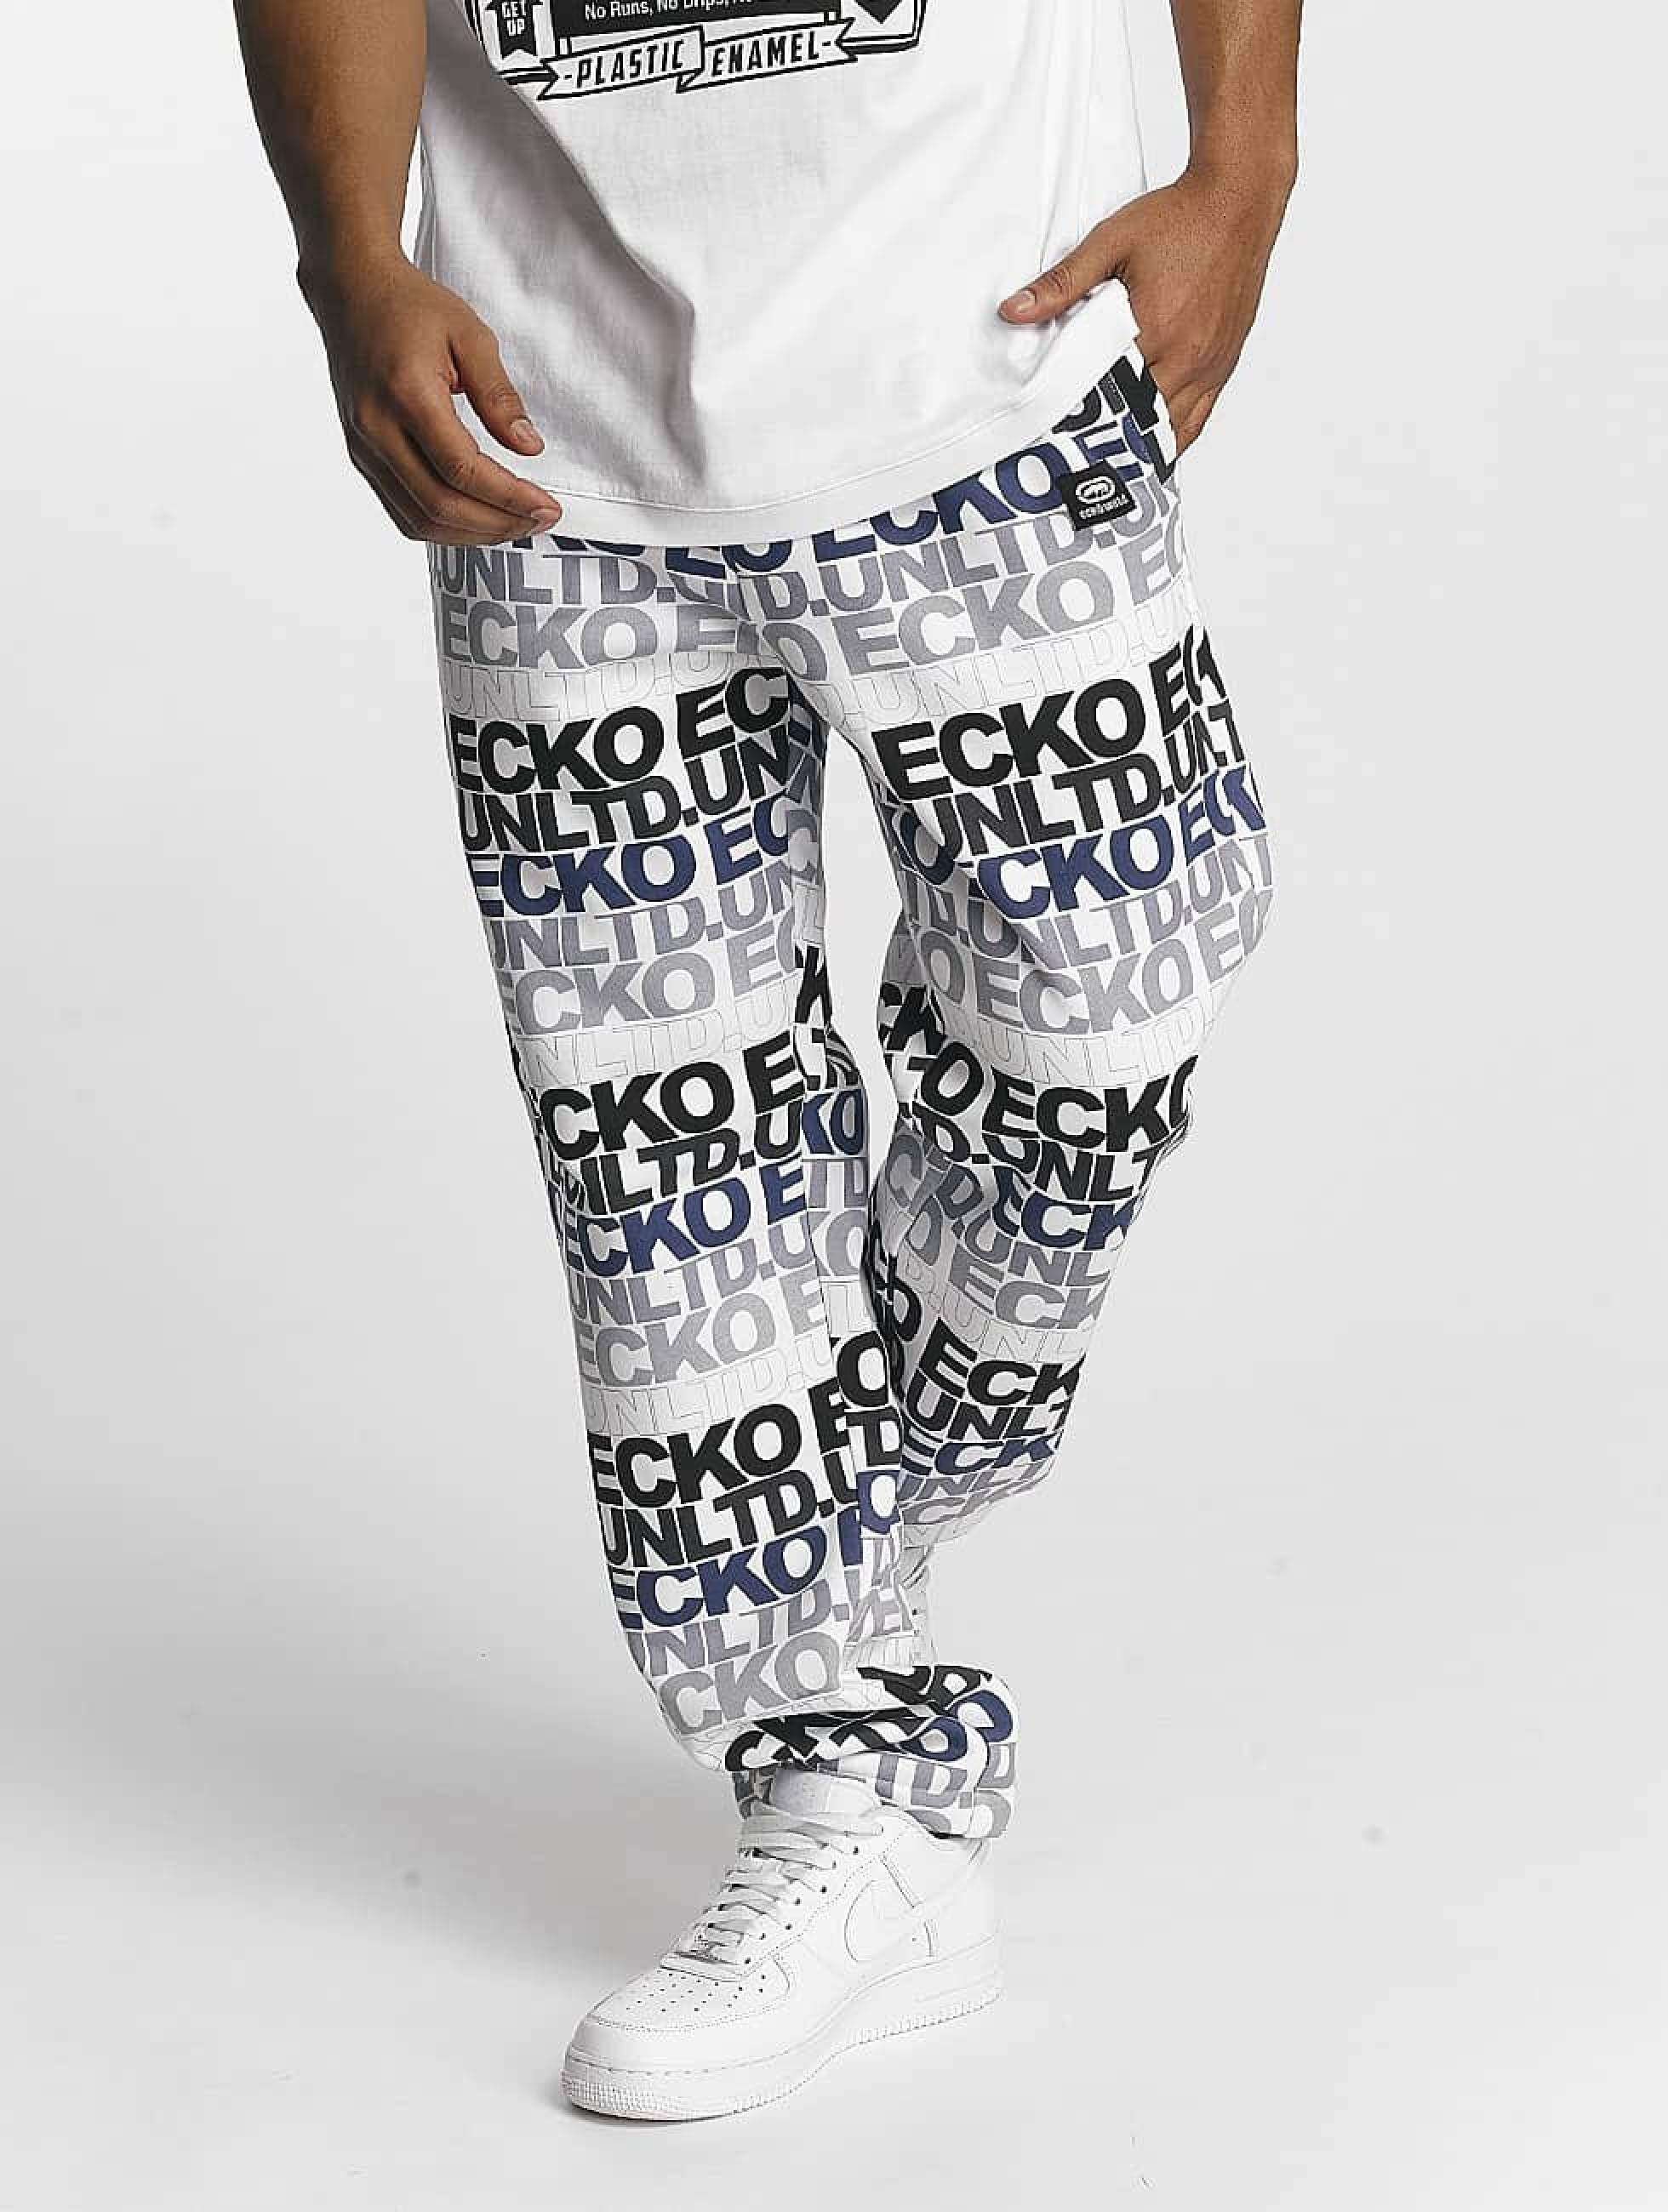 Ecko Unltd. / Sweat Pant TroudÀrgent in white L